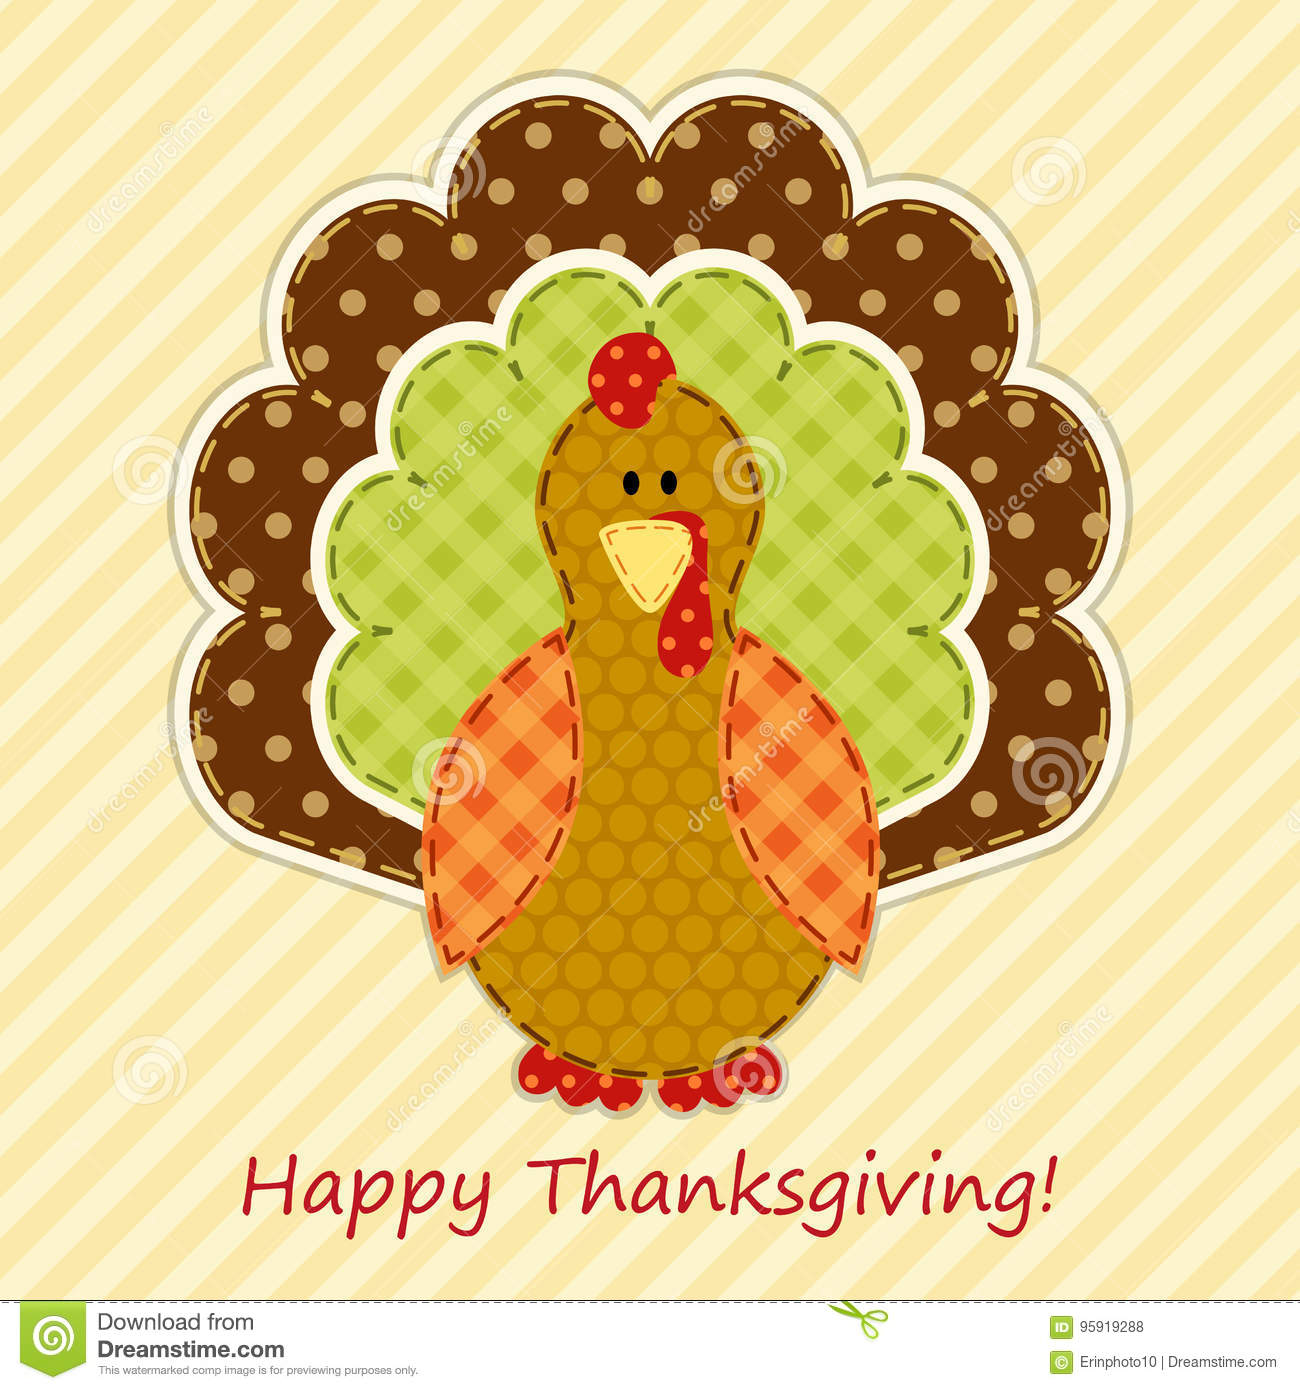 Cute thanksgiving turkey as retro fabric applique in traditional cute thanksgiving turkey as retro fabric applique in traditional colors ideal as thanksgiving greeting card m4hsunfo